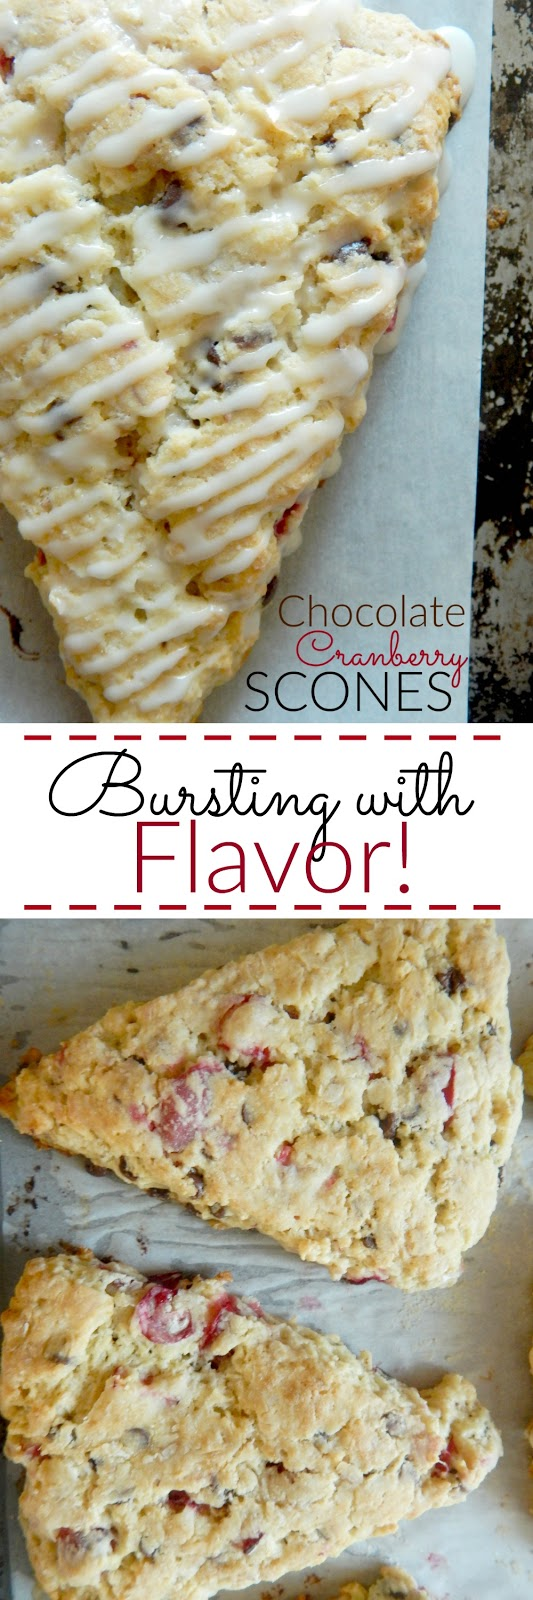 Chocolate Cranberry Scones...tender, flaky and bursting with flavor! (sweetandsavoryfood.com)